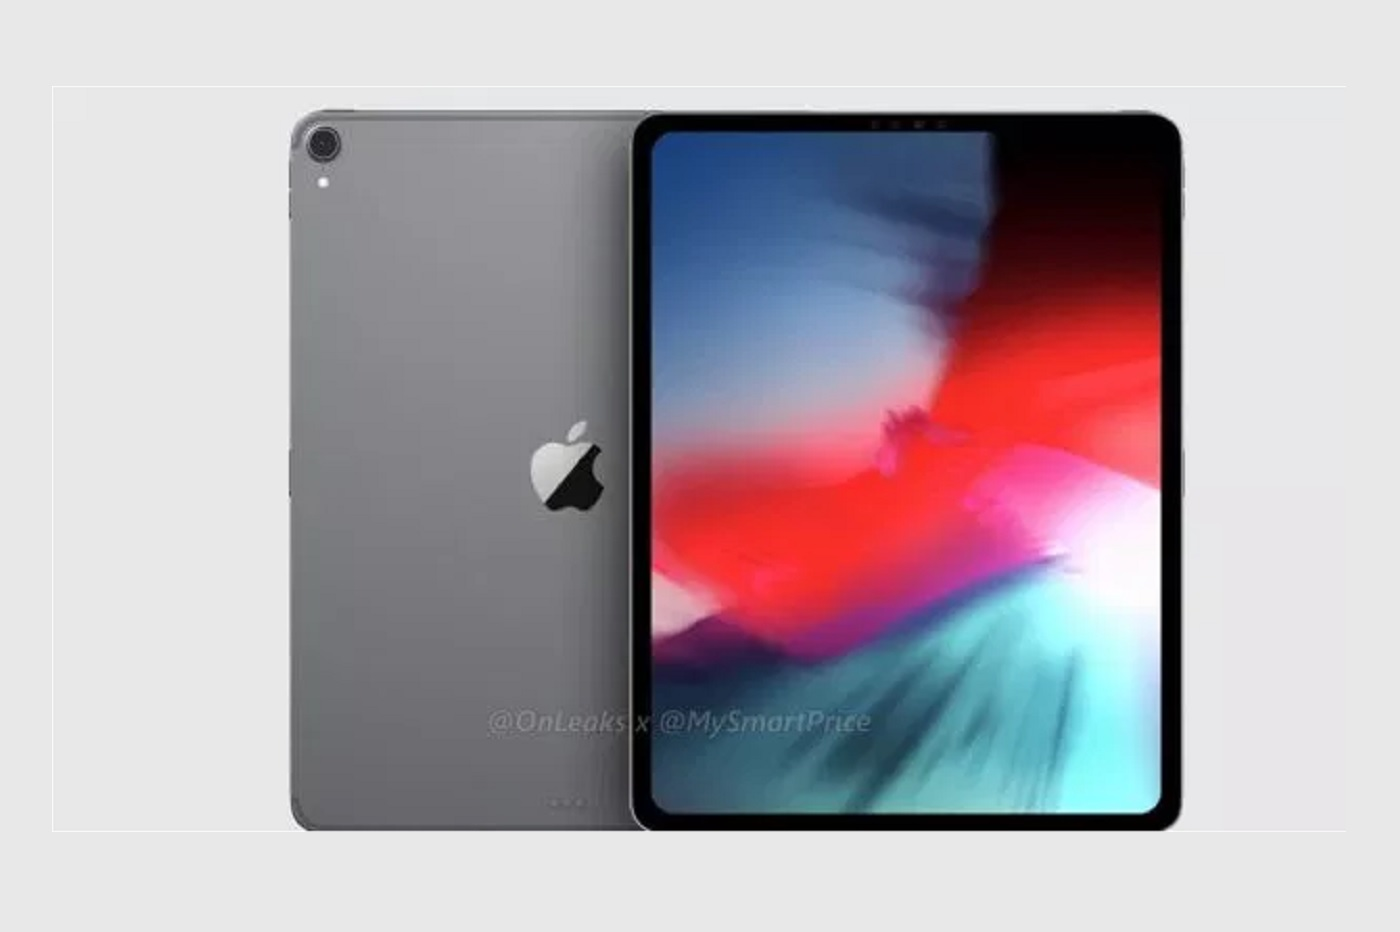 Apple to launch new iPad Pro, Macbook devices today